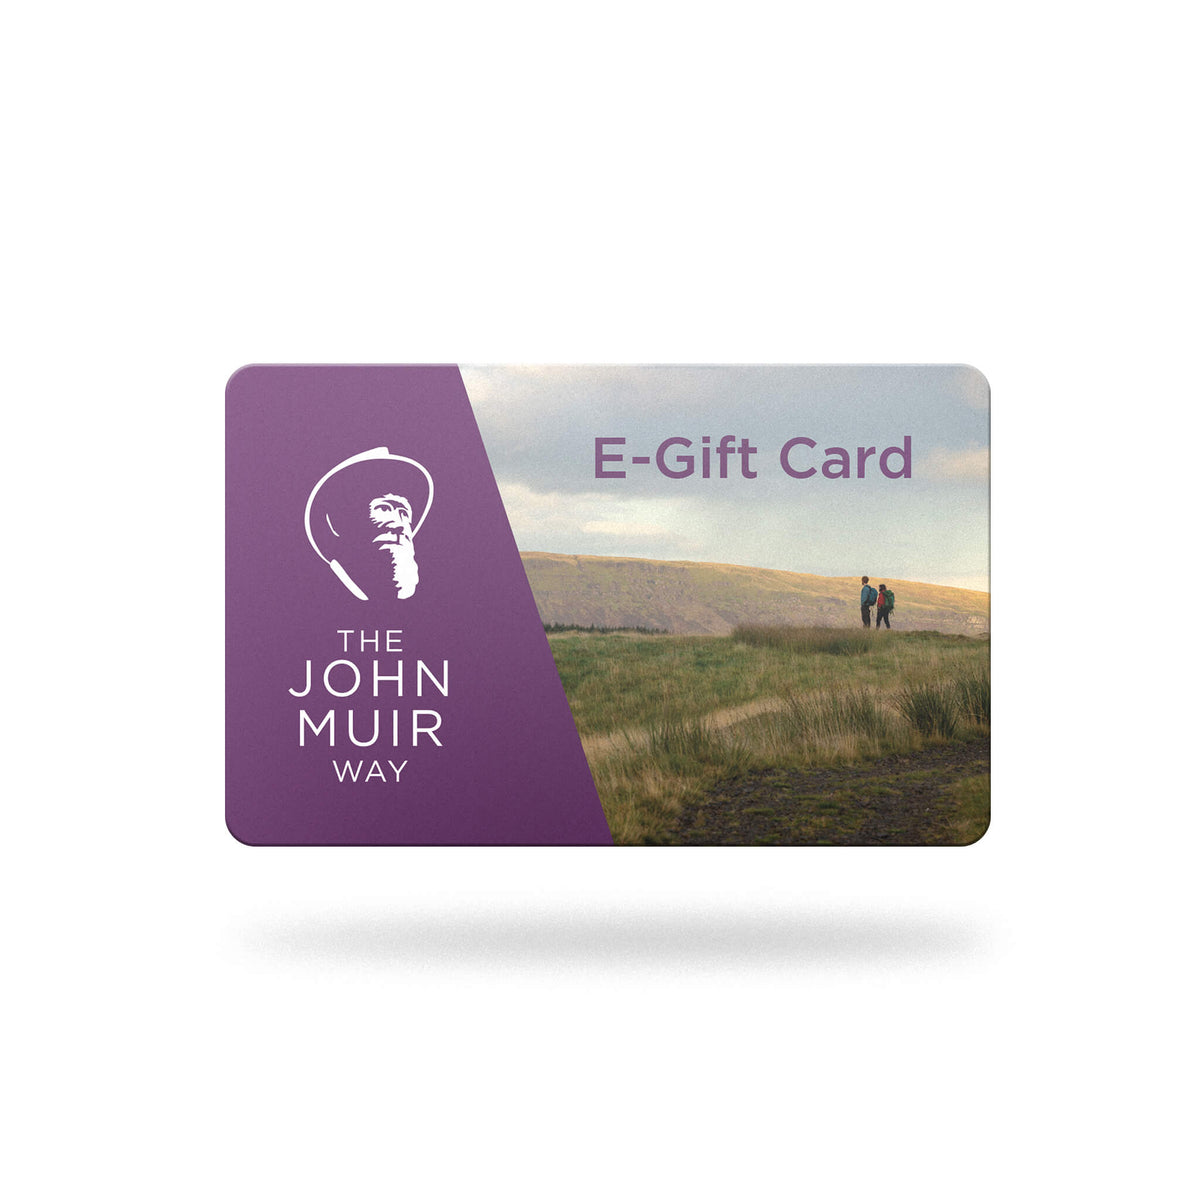 john muir way gift card